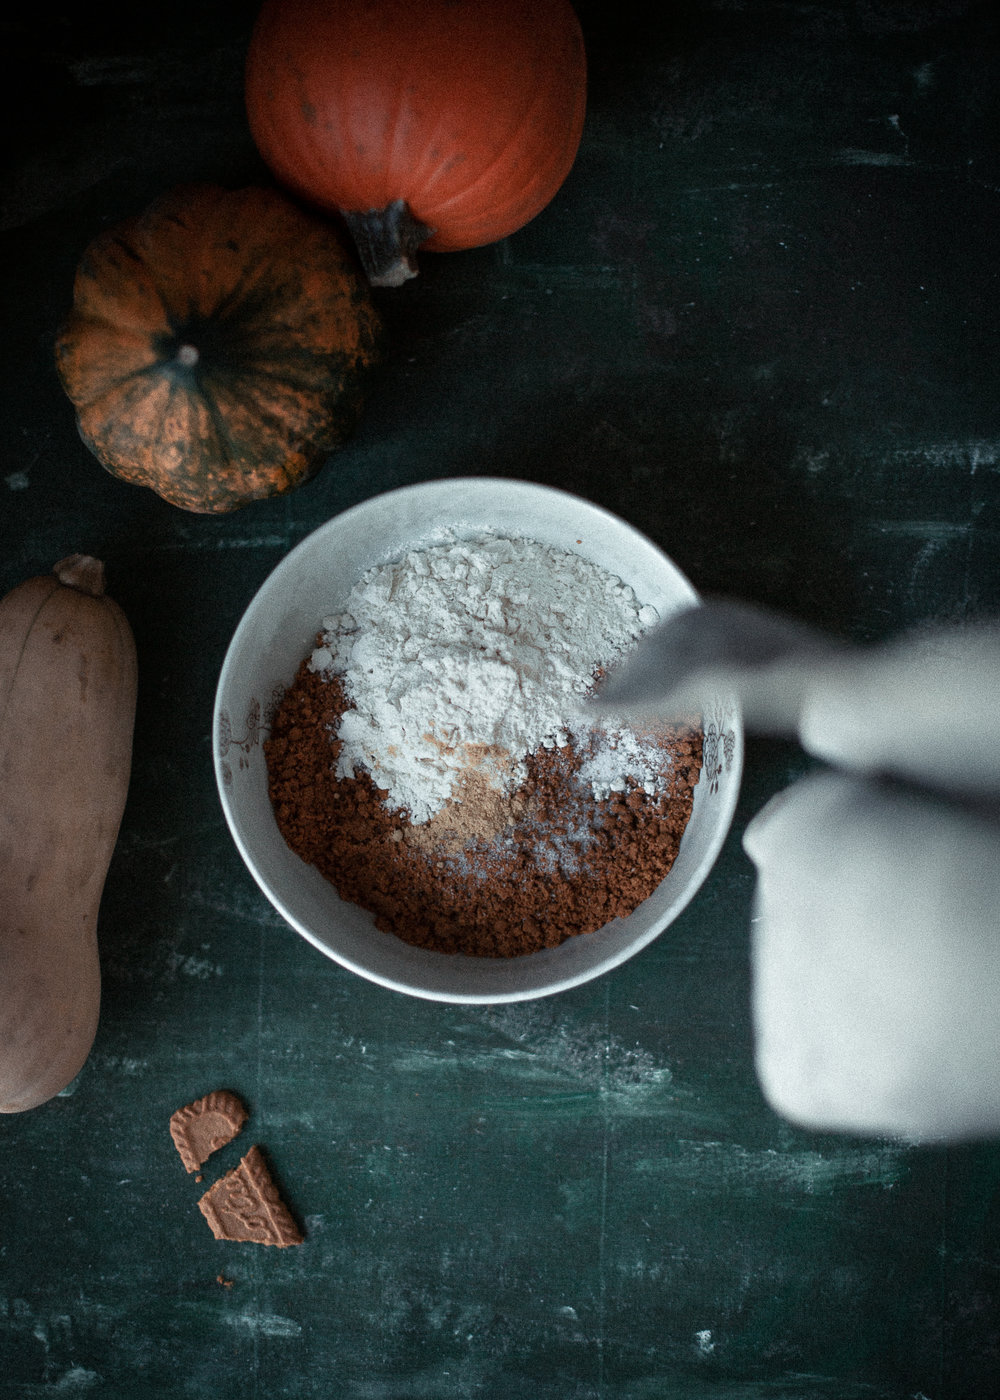 Best recipe with Biscoff cookies, Urth Caffe style pumpkin pie at home | from scratch, mostly